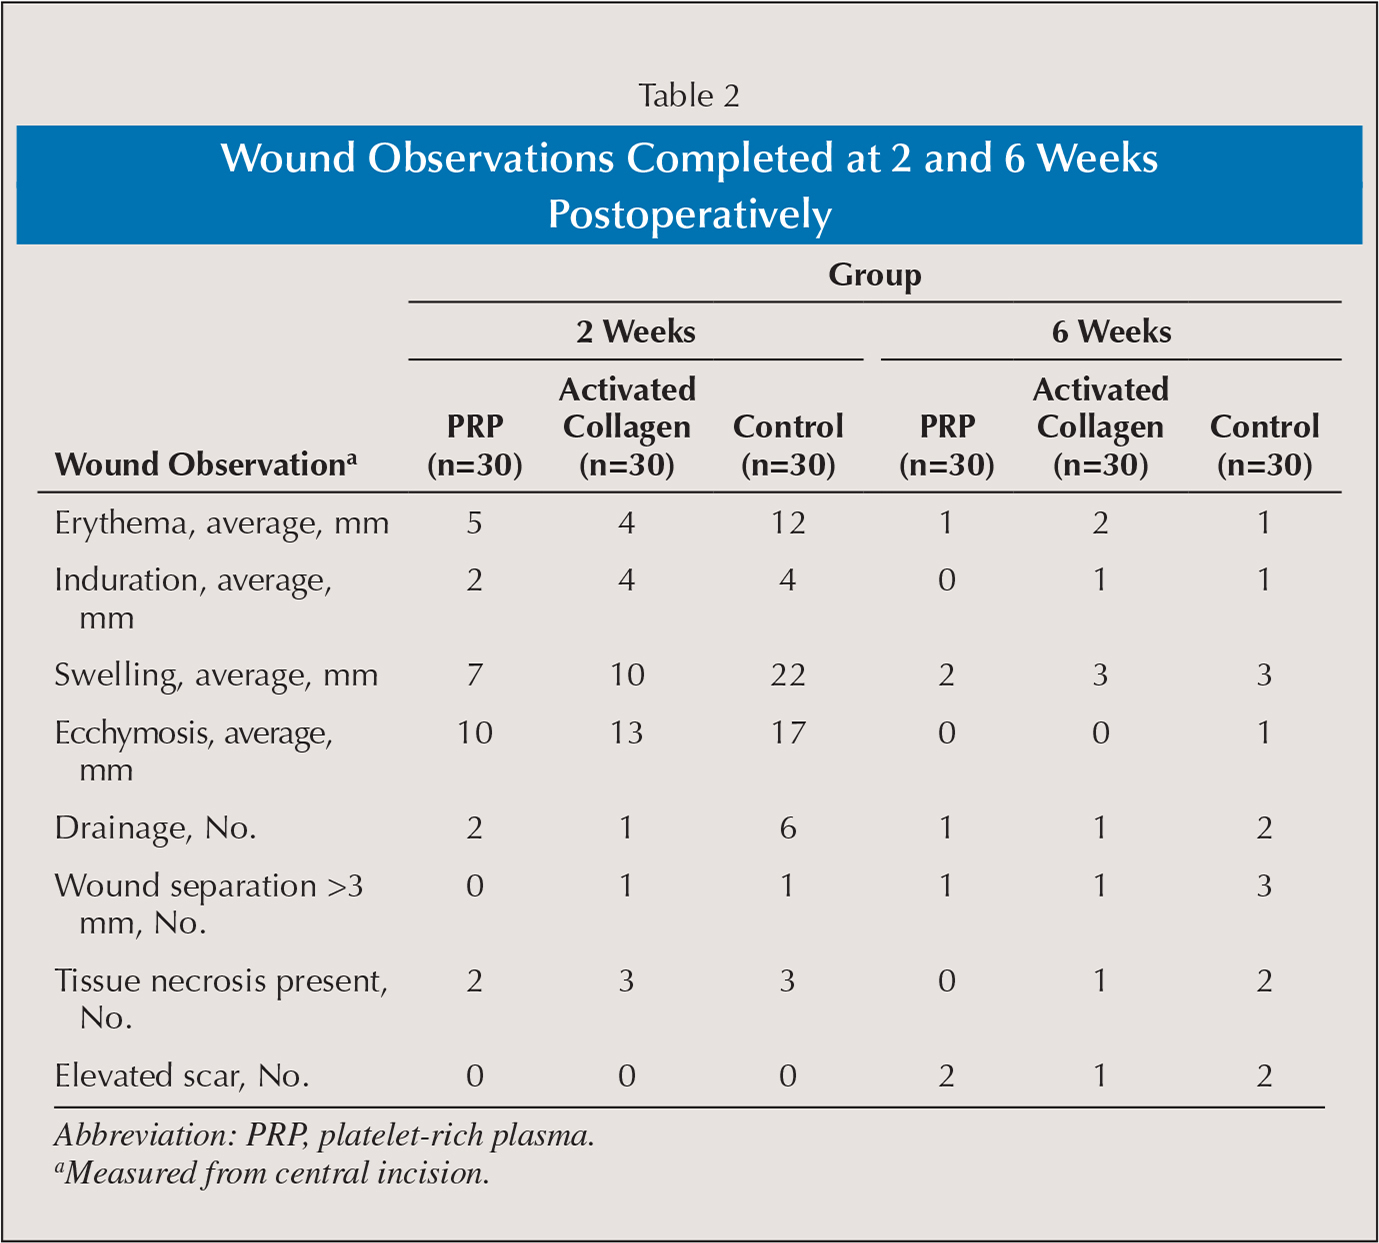 Wound Observations Completed at 2 and 6 Weeks Postoperatively